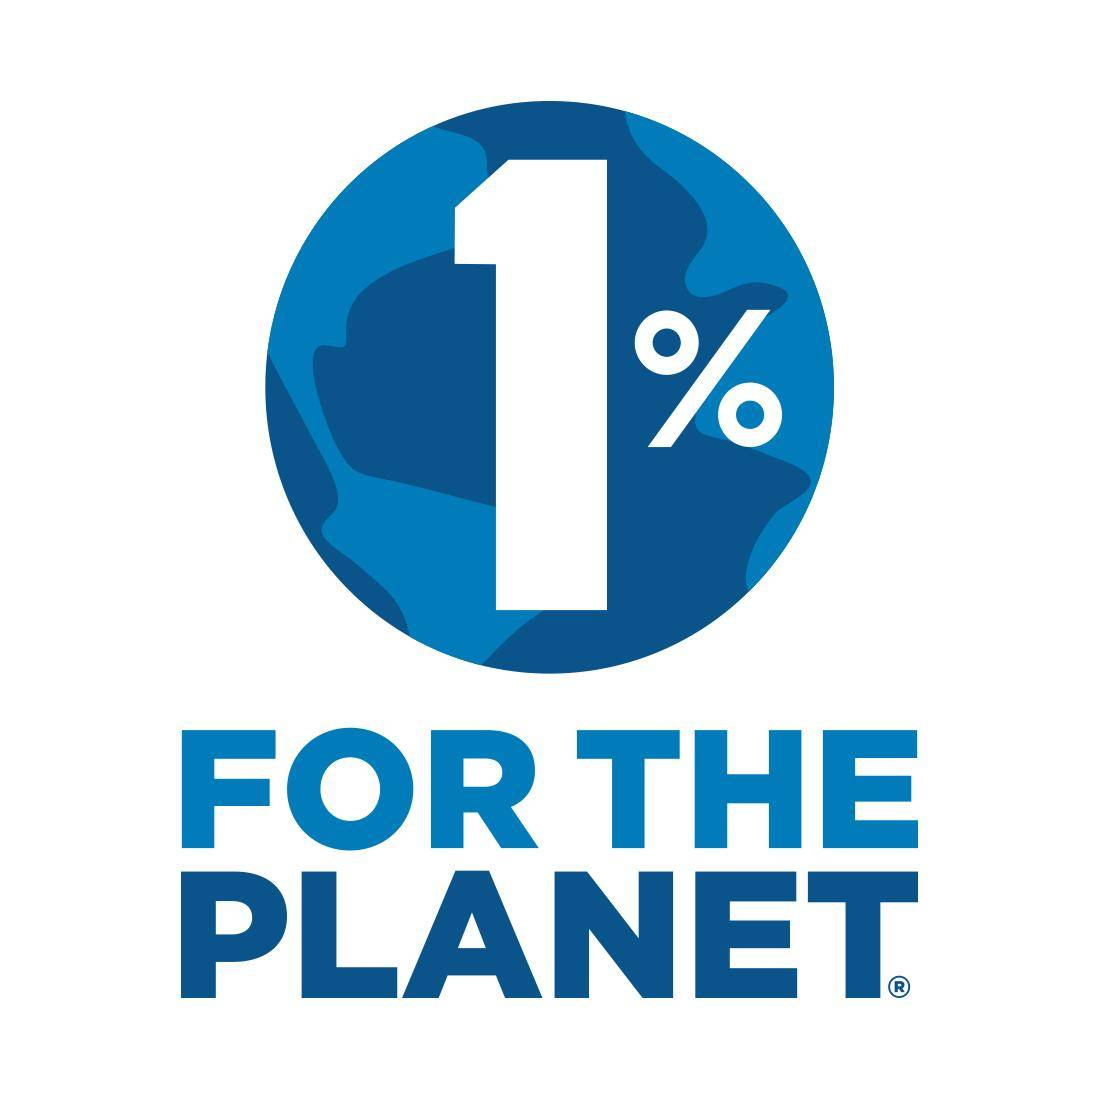 1% for the planet logo with the globe in two shades of blue